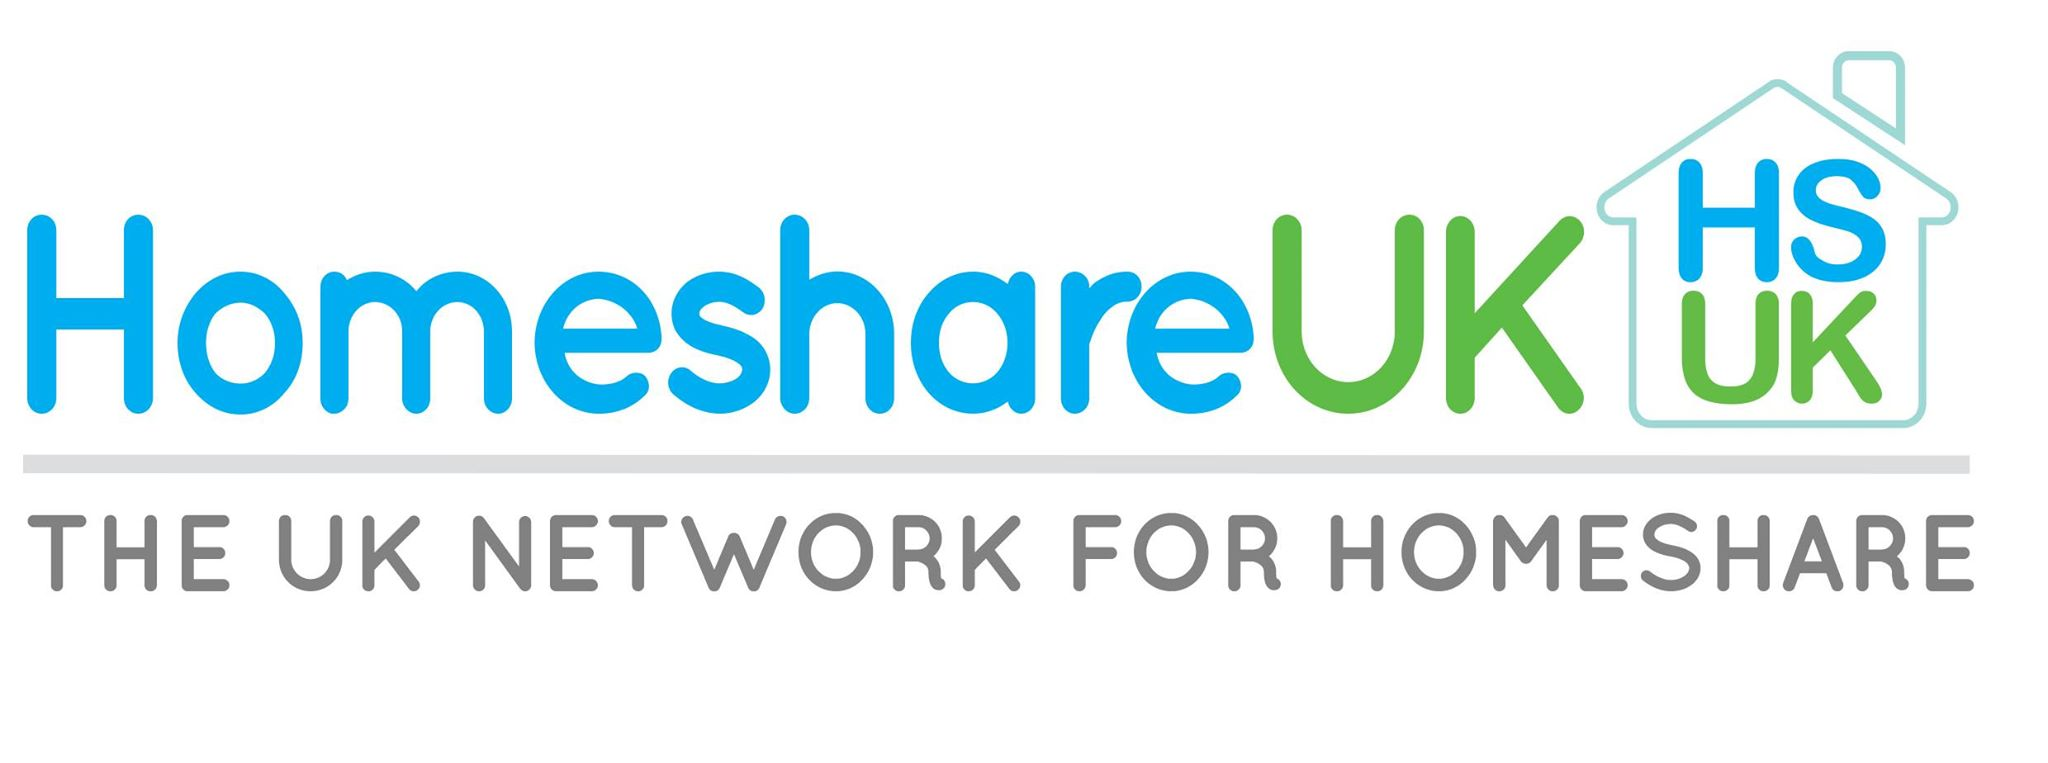 Homeshare UK